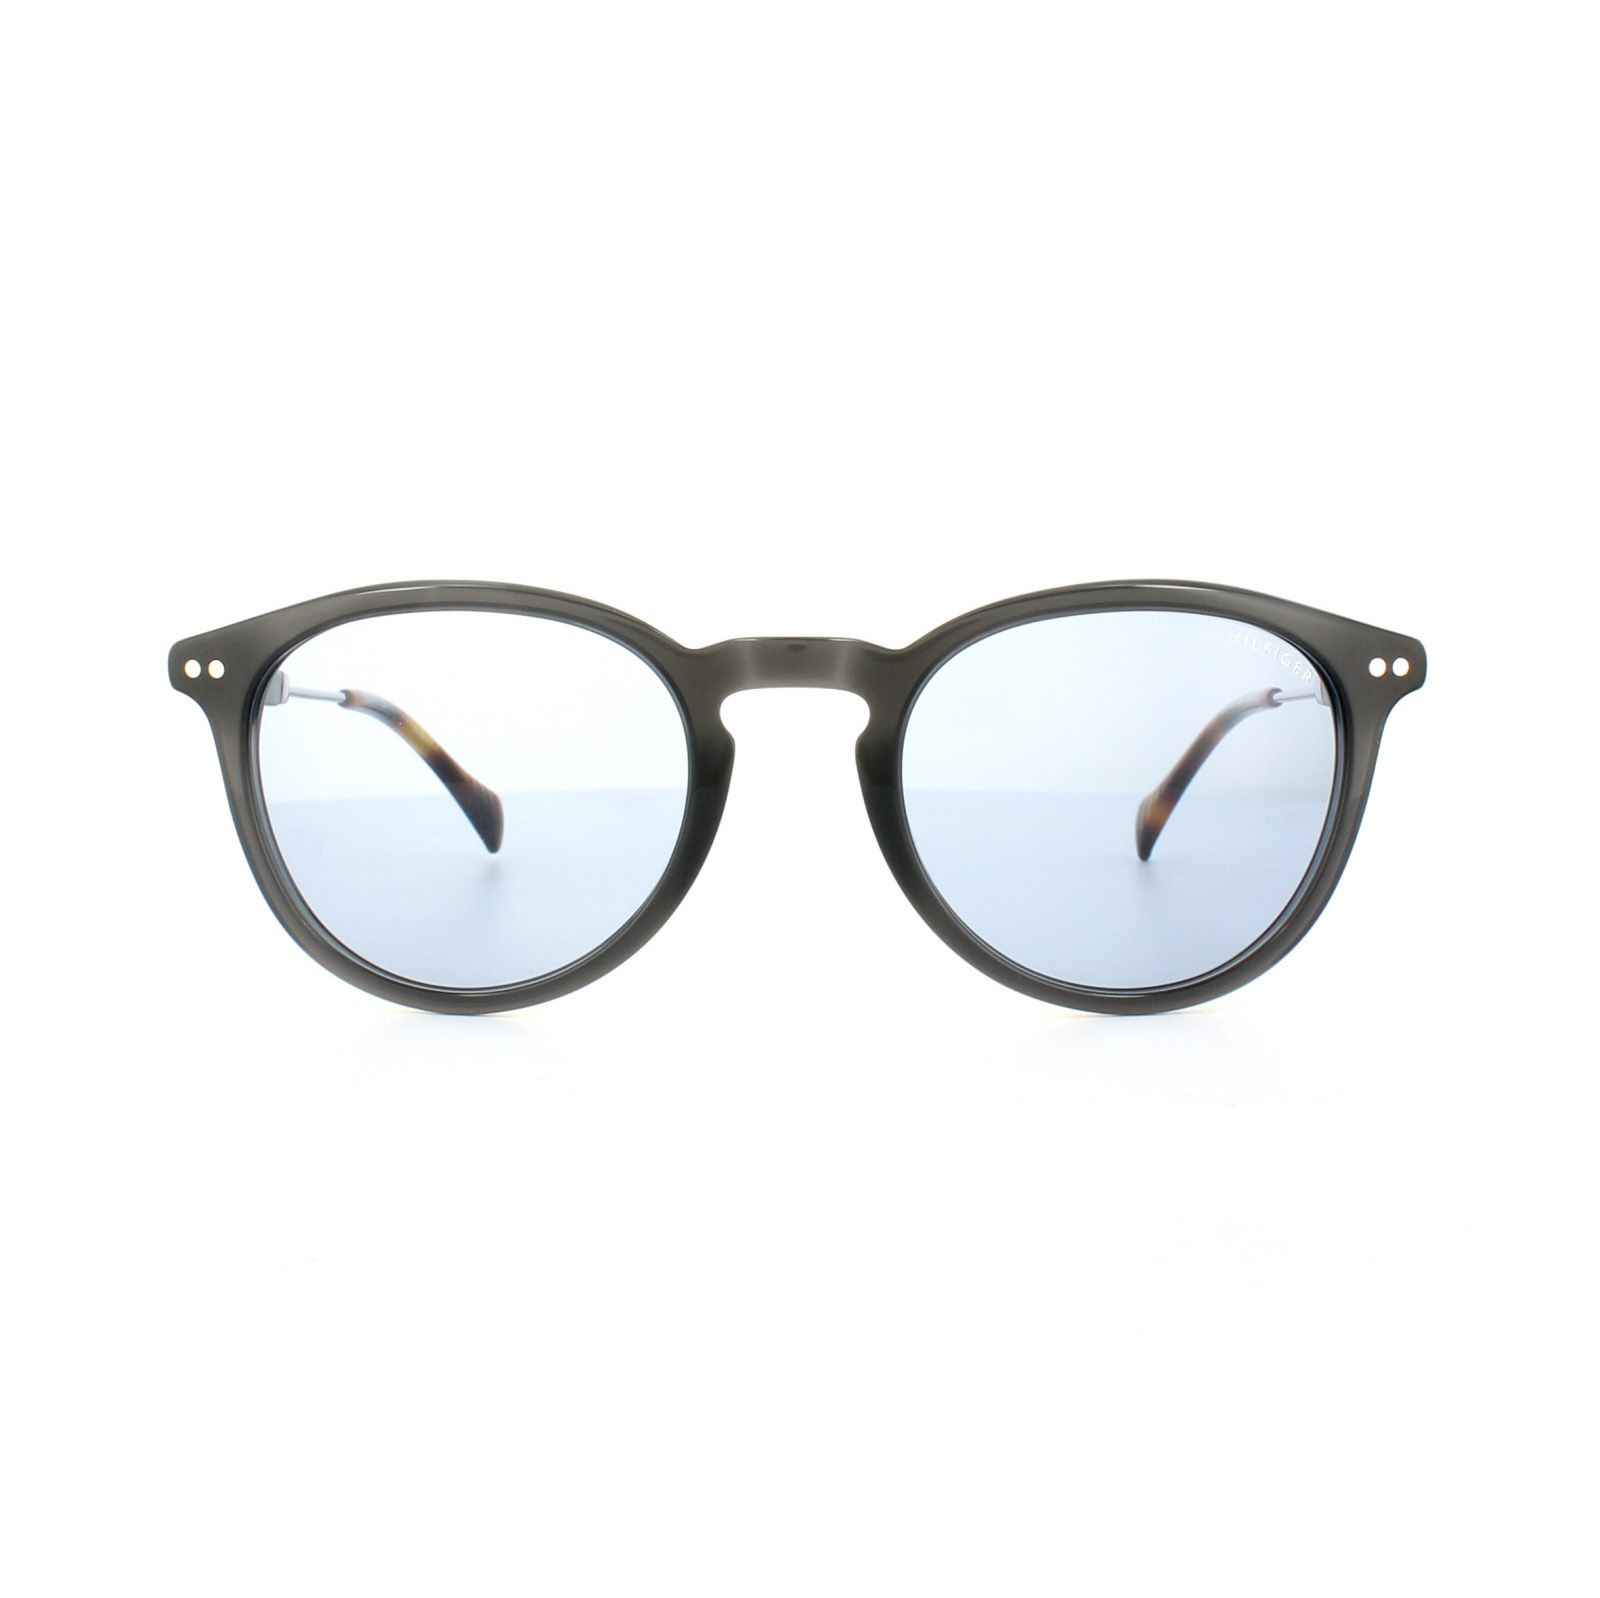 5f6a0b9ee4 Sentinel Tommy Hilfiger Sunglasses TH 1198 S 5RK 61 Dark Grey Silver Light  Blue Mirror